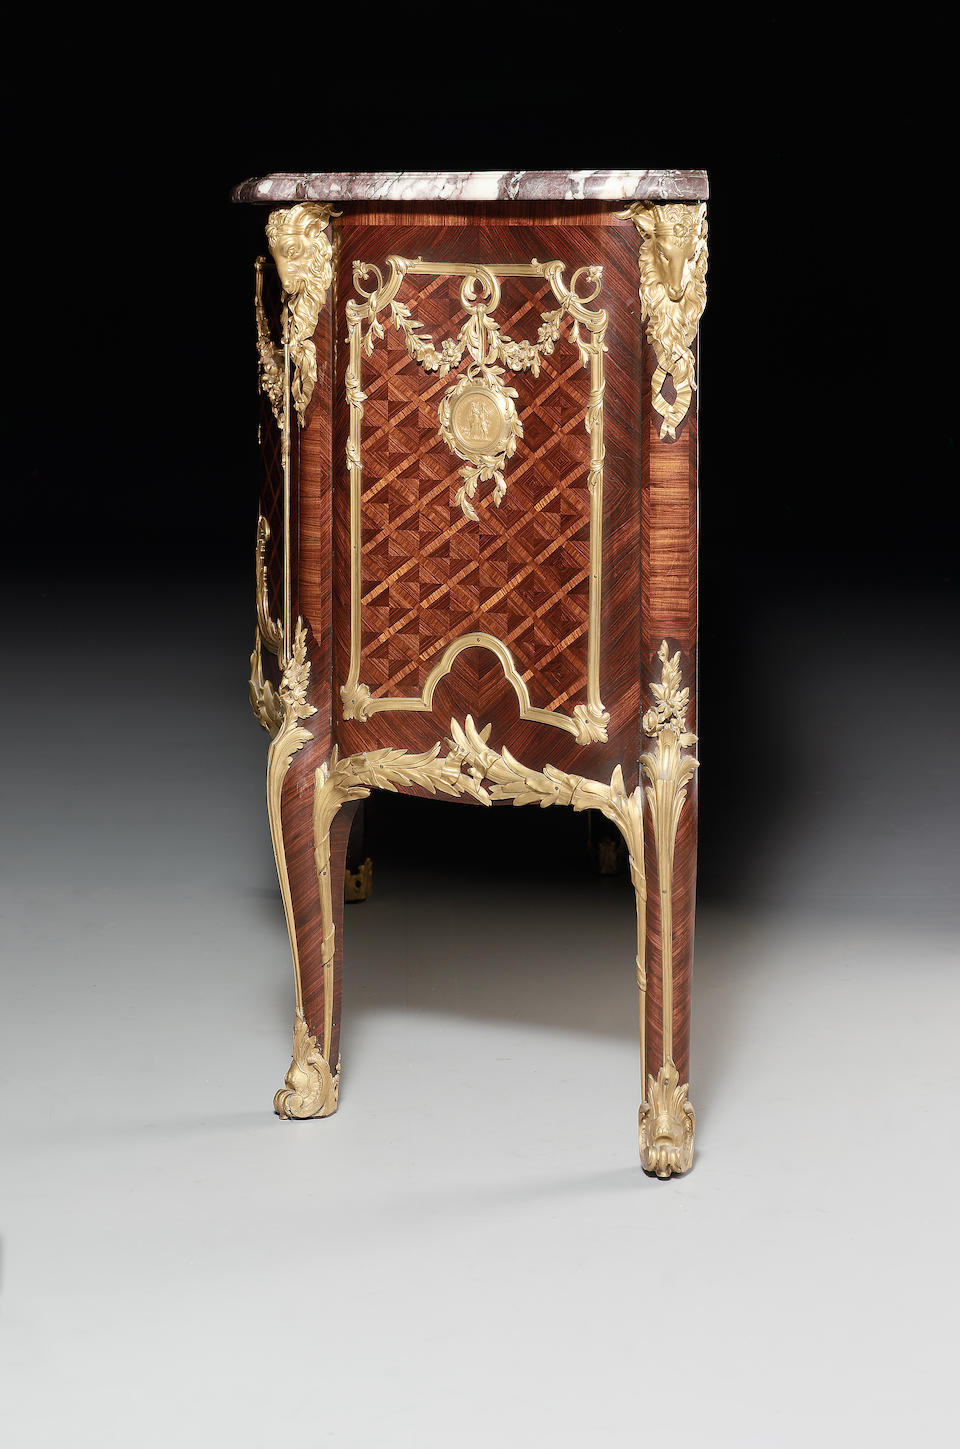 A Louis XV style ormolu-mounted kingwood, tulipwood and parquetry commode médaillierIn the manner of Antoine Gaudreaux, by Henry Nelson, Paris, Third-quarter 19th century